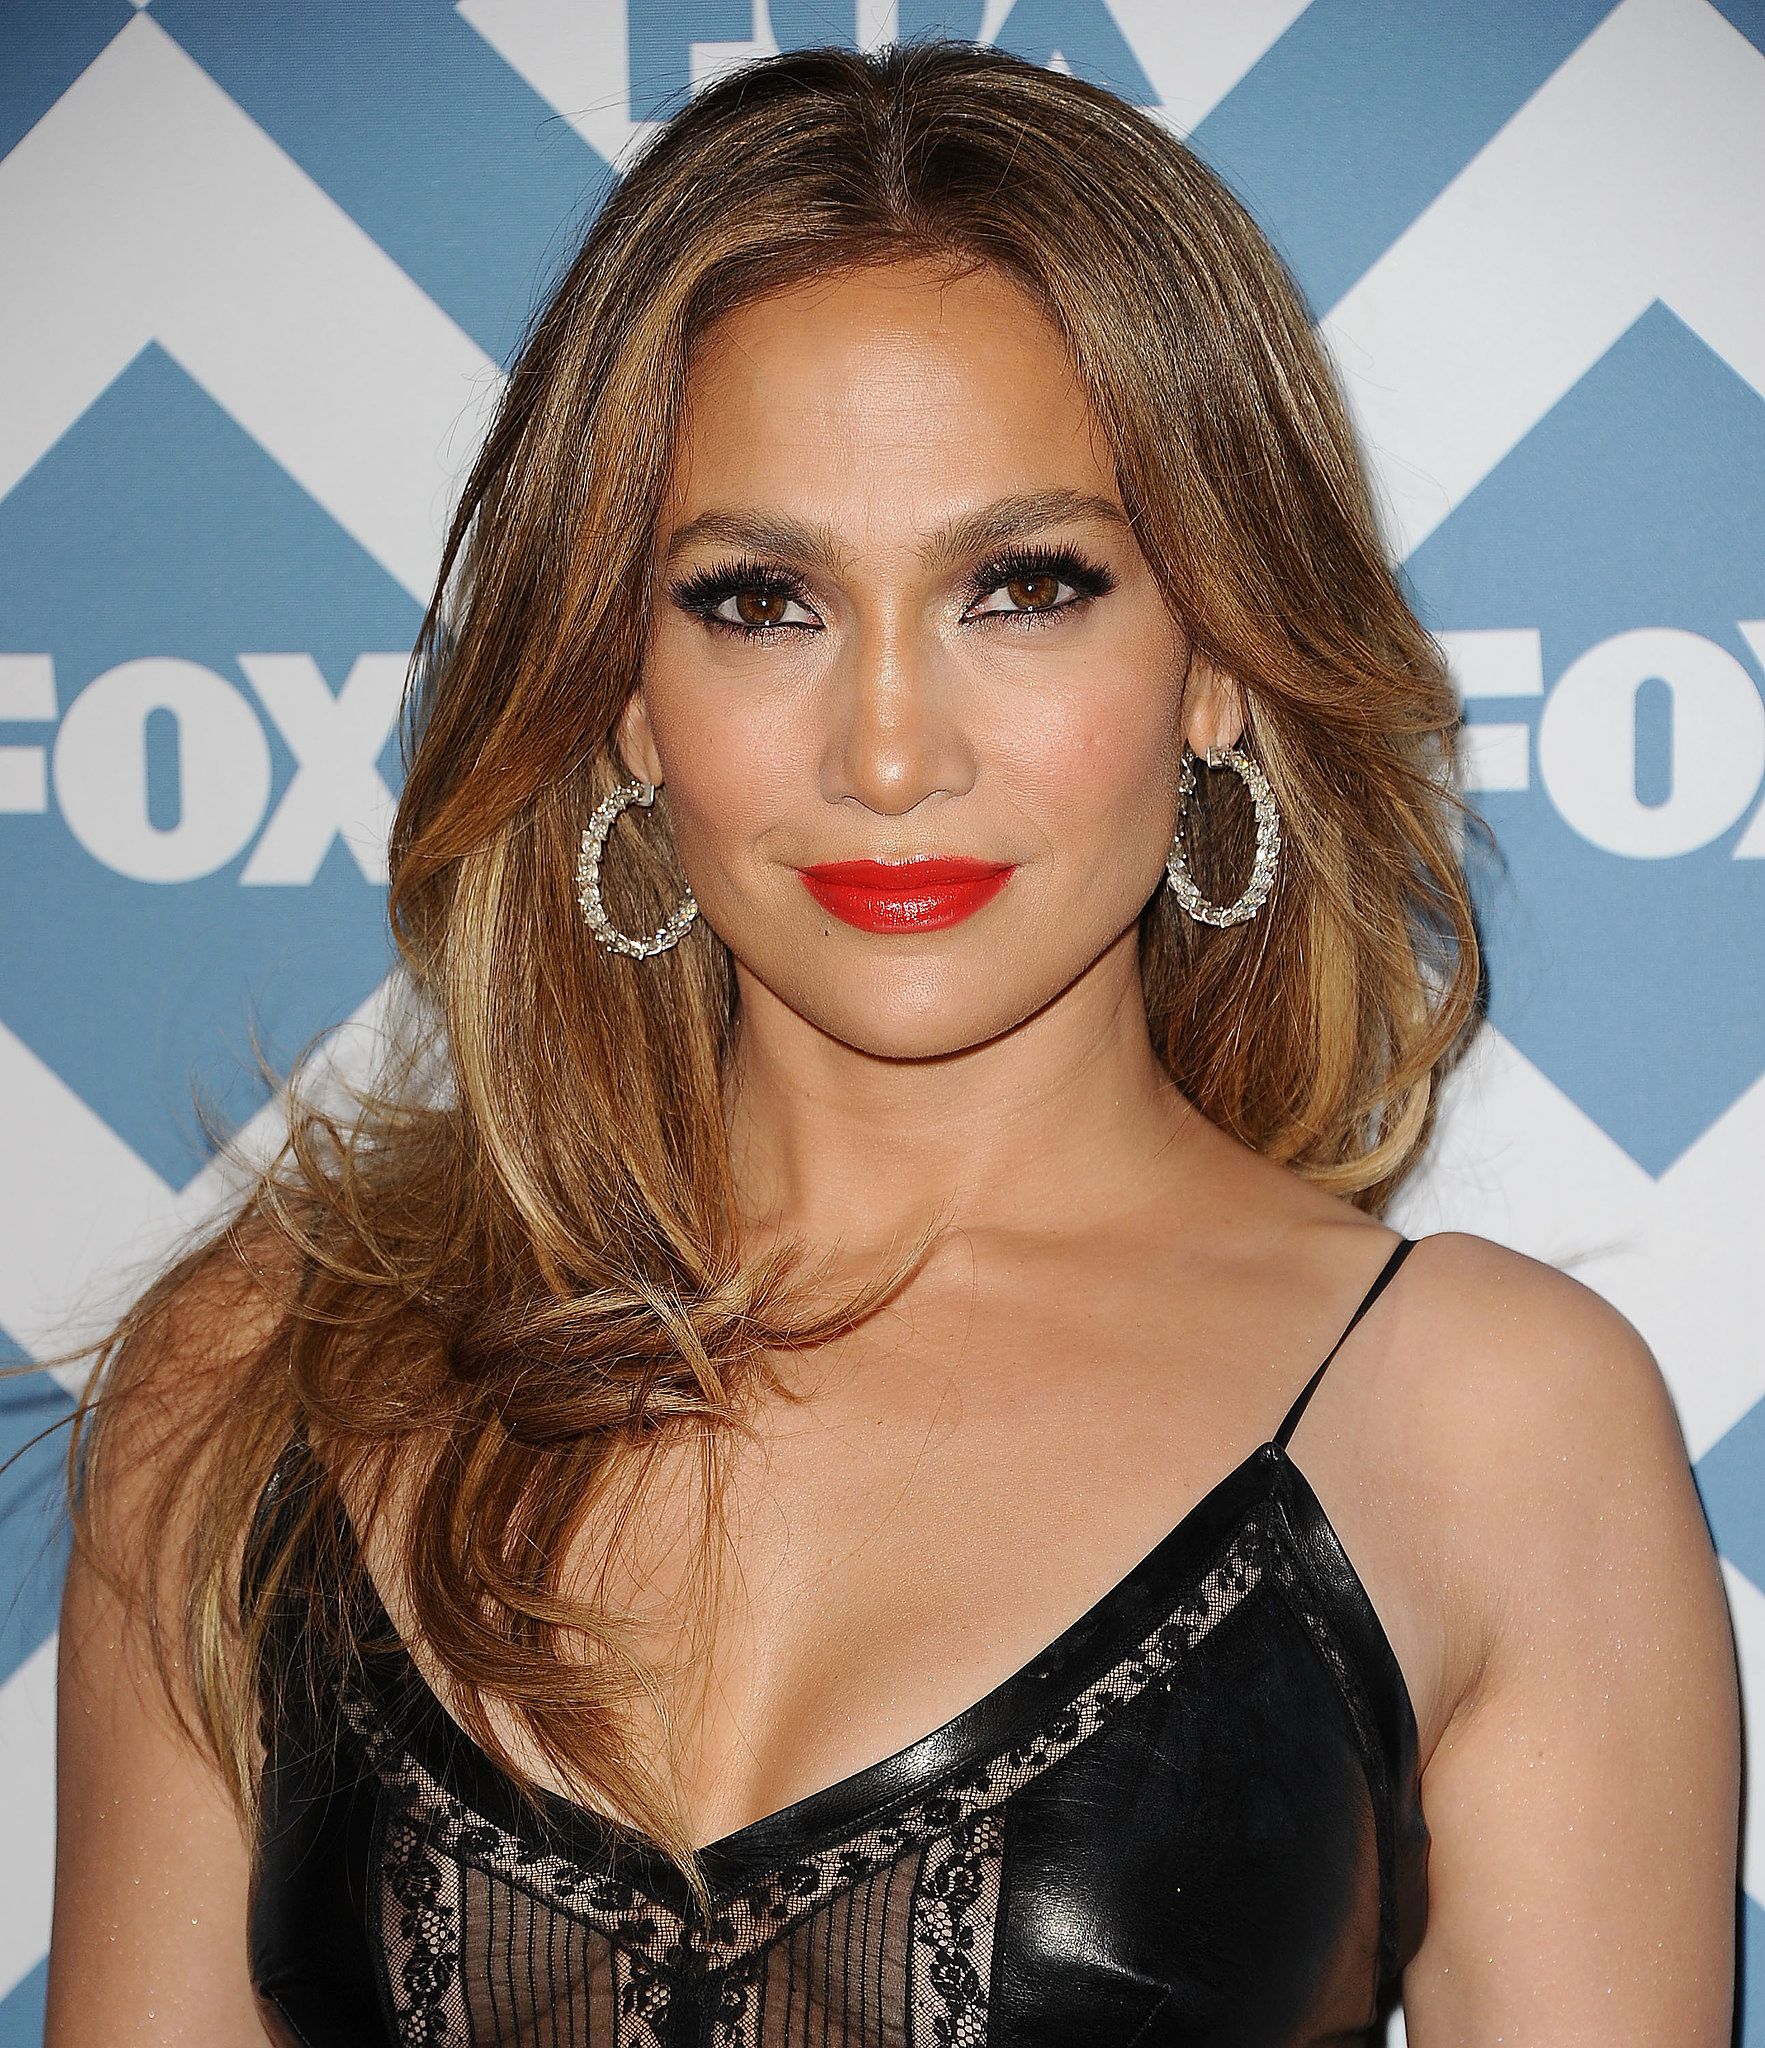 Jennifer Lopez Hair at Fox Winter TCA 2014 | POPSUGAR Beauty